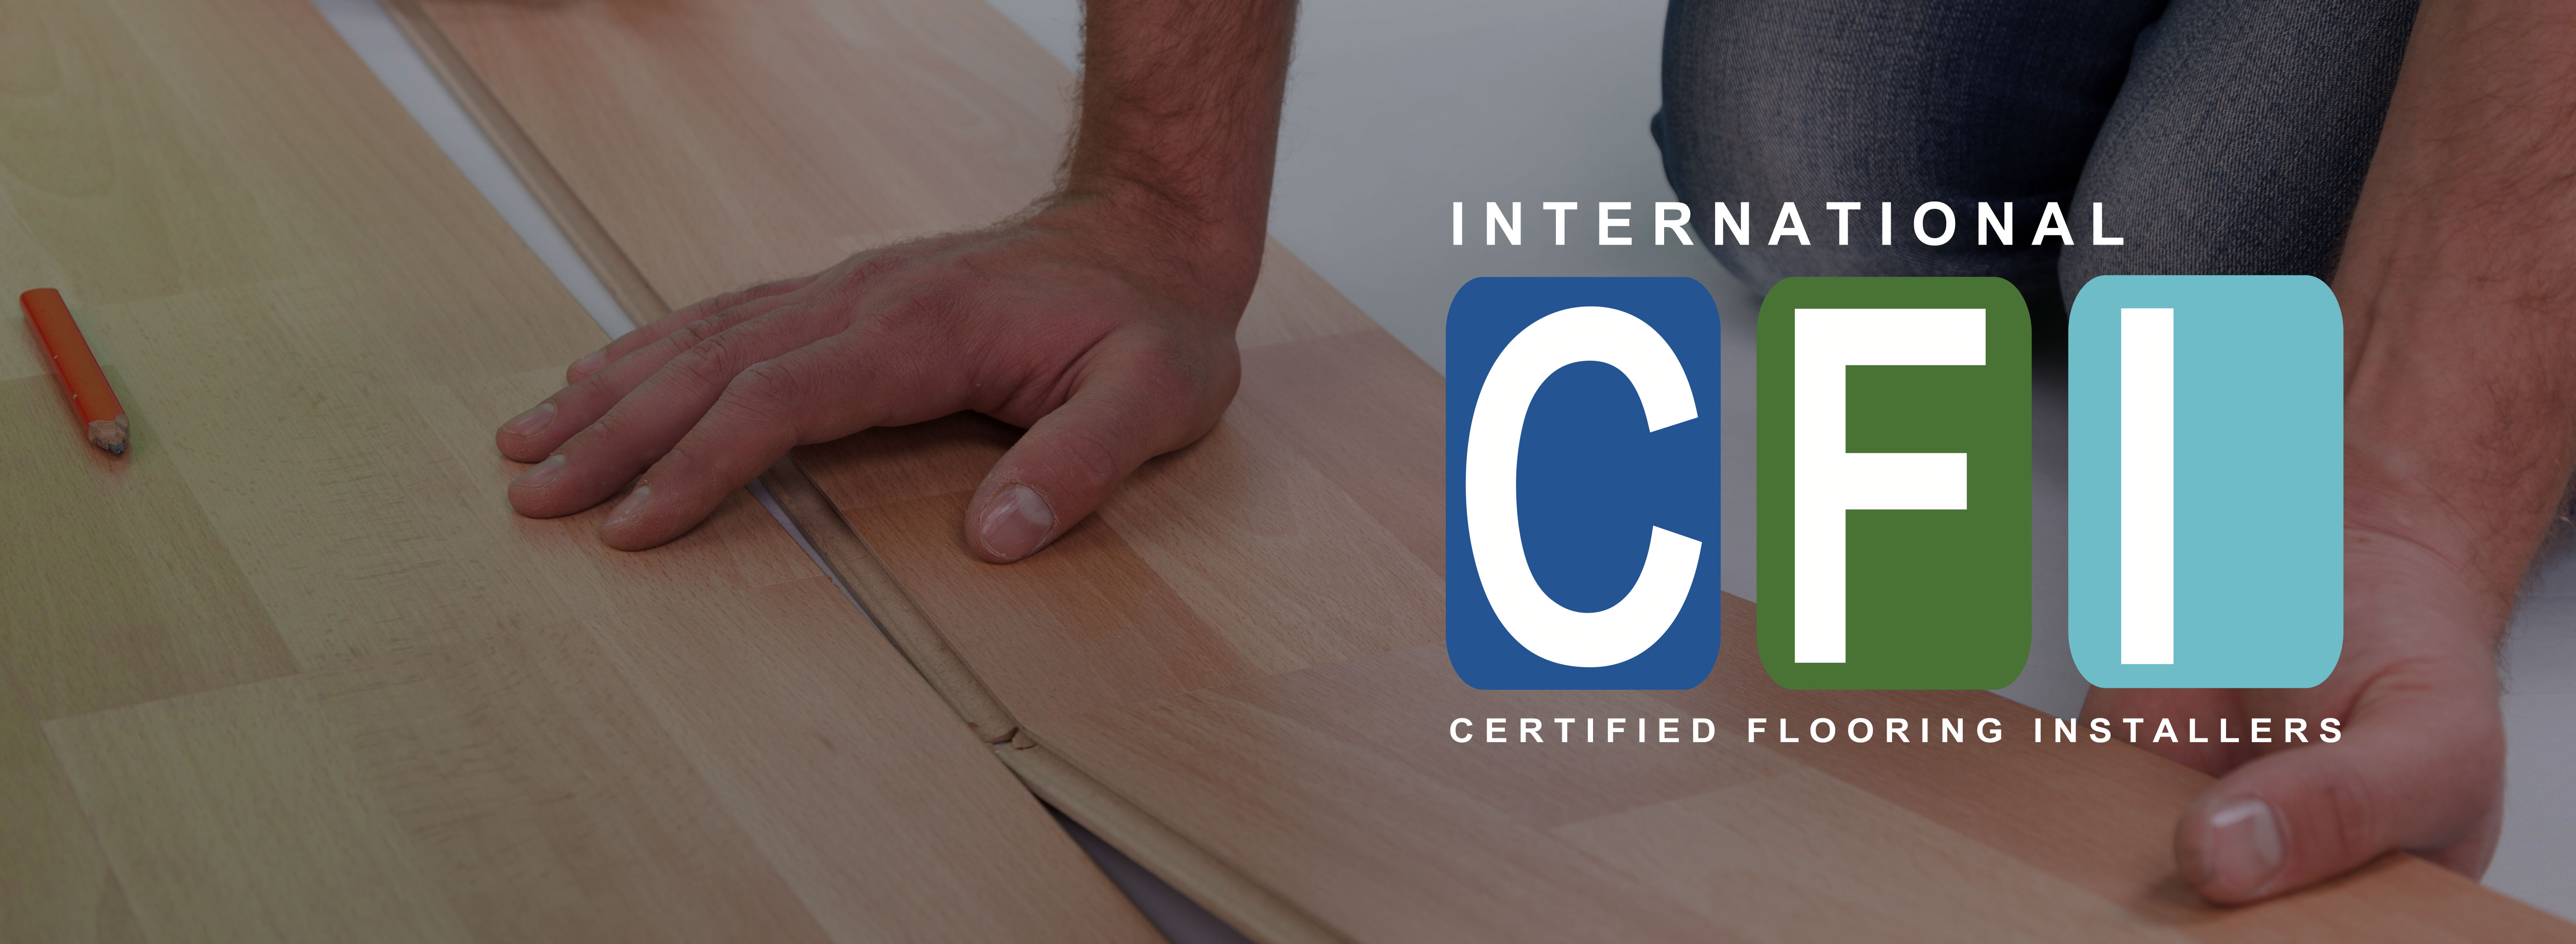 What Is CFI? The International Certified Flooring Installers Association ...